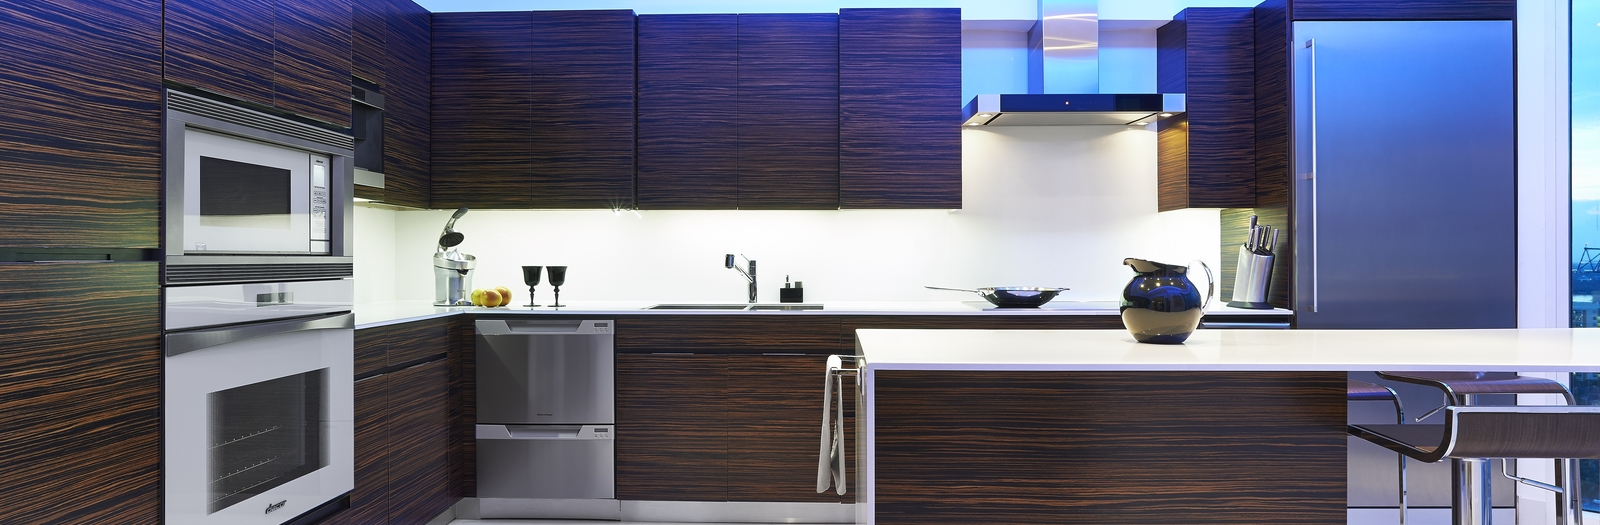 Kitchen And Bath Kitchen Renovations Mississauga